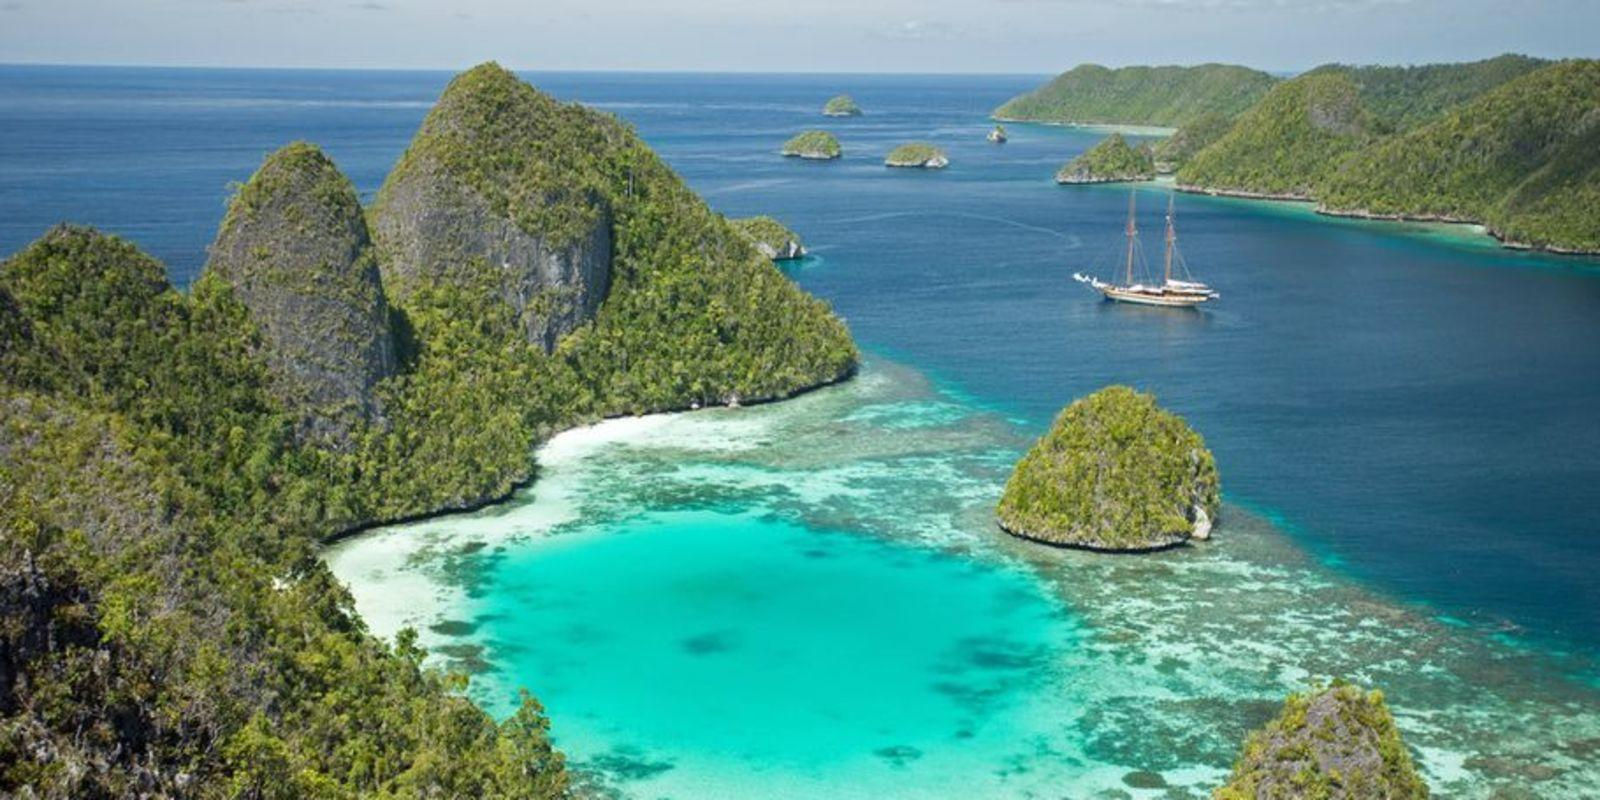 Cruise 8 days on a Catamaran with hostess at Bali - All Inclusive